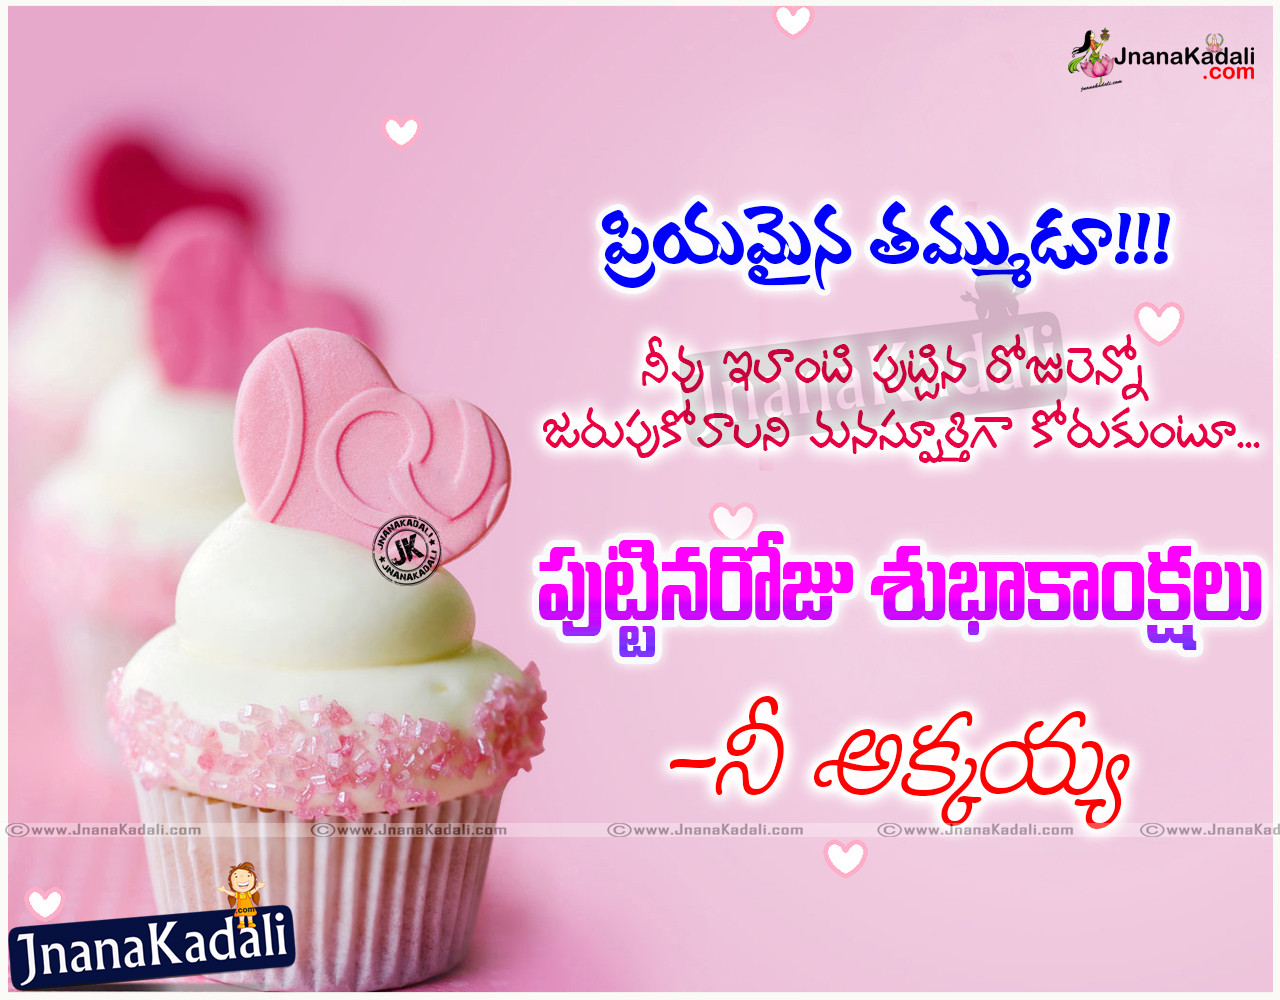 happy birthday wishes wallpaper download ; new-here-is-happy-birthday-wishes-greetings-quotes-wallpapers-in-telugu-of-happy-birthday-wishes-in-telugu-images